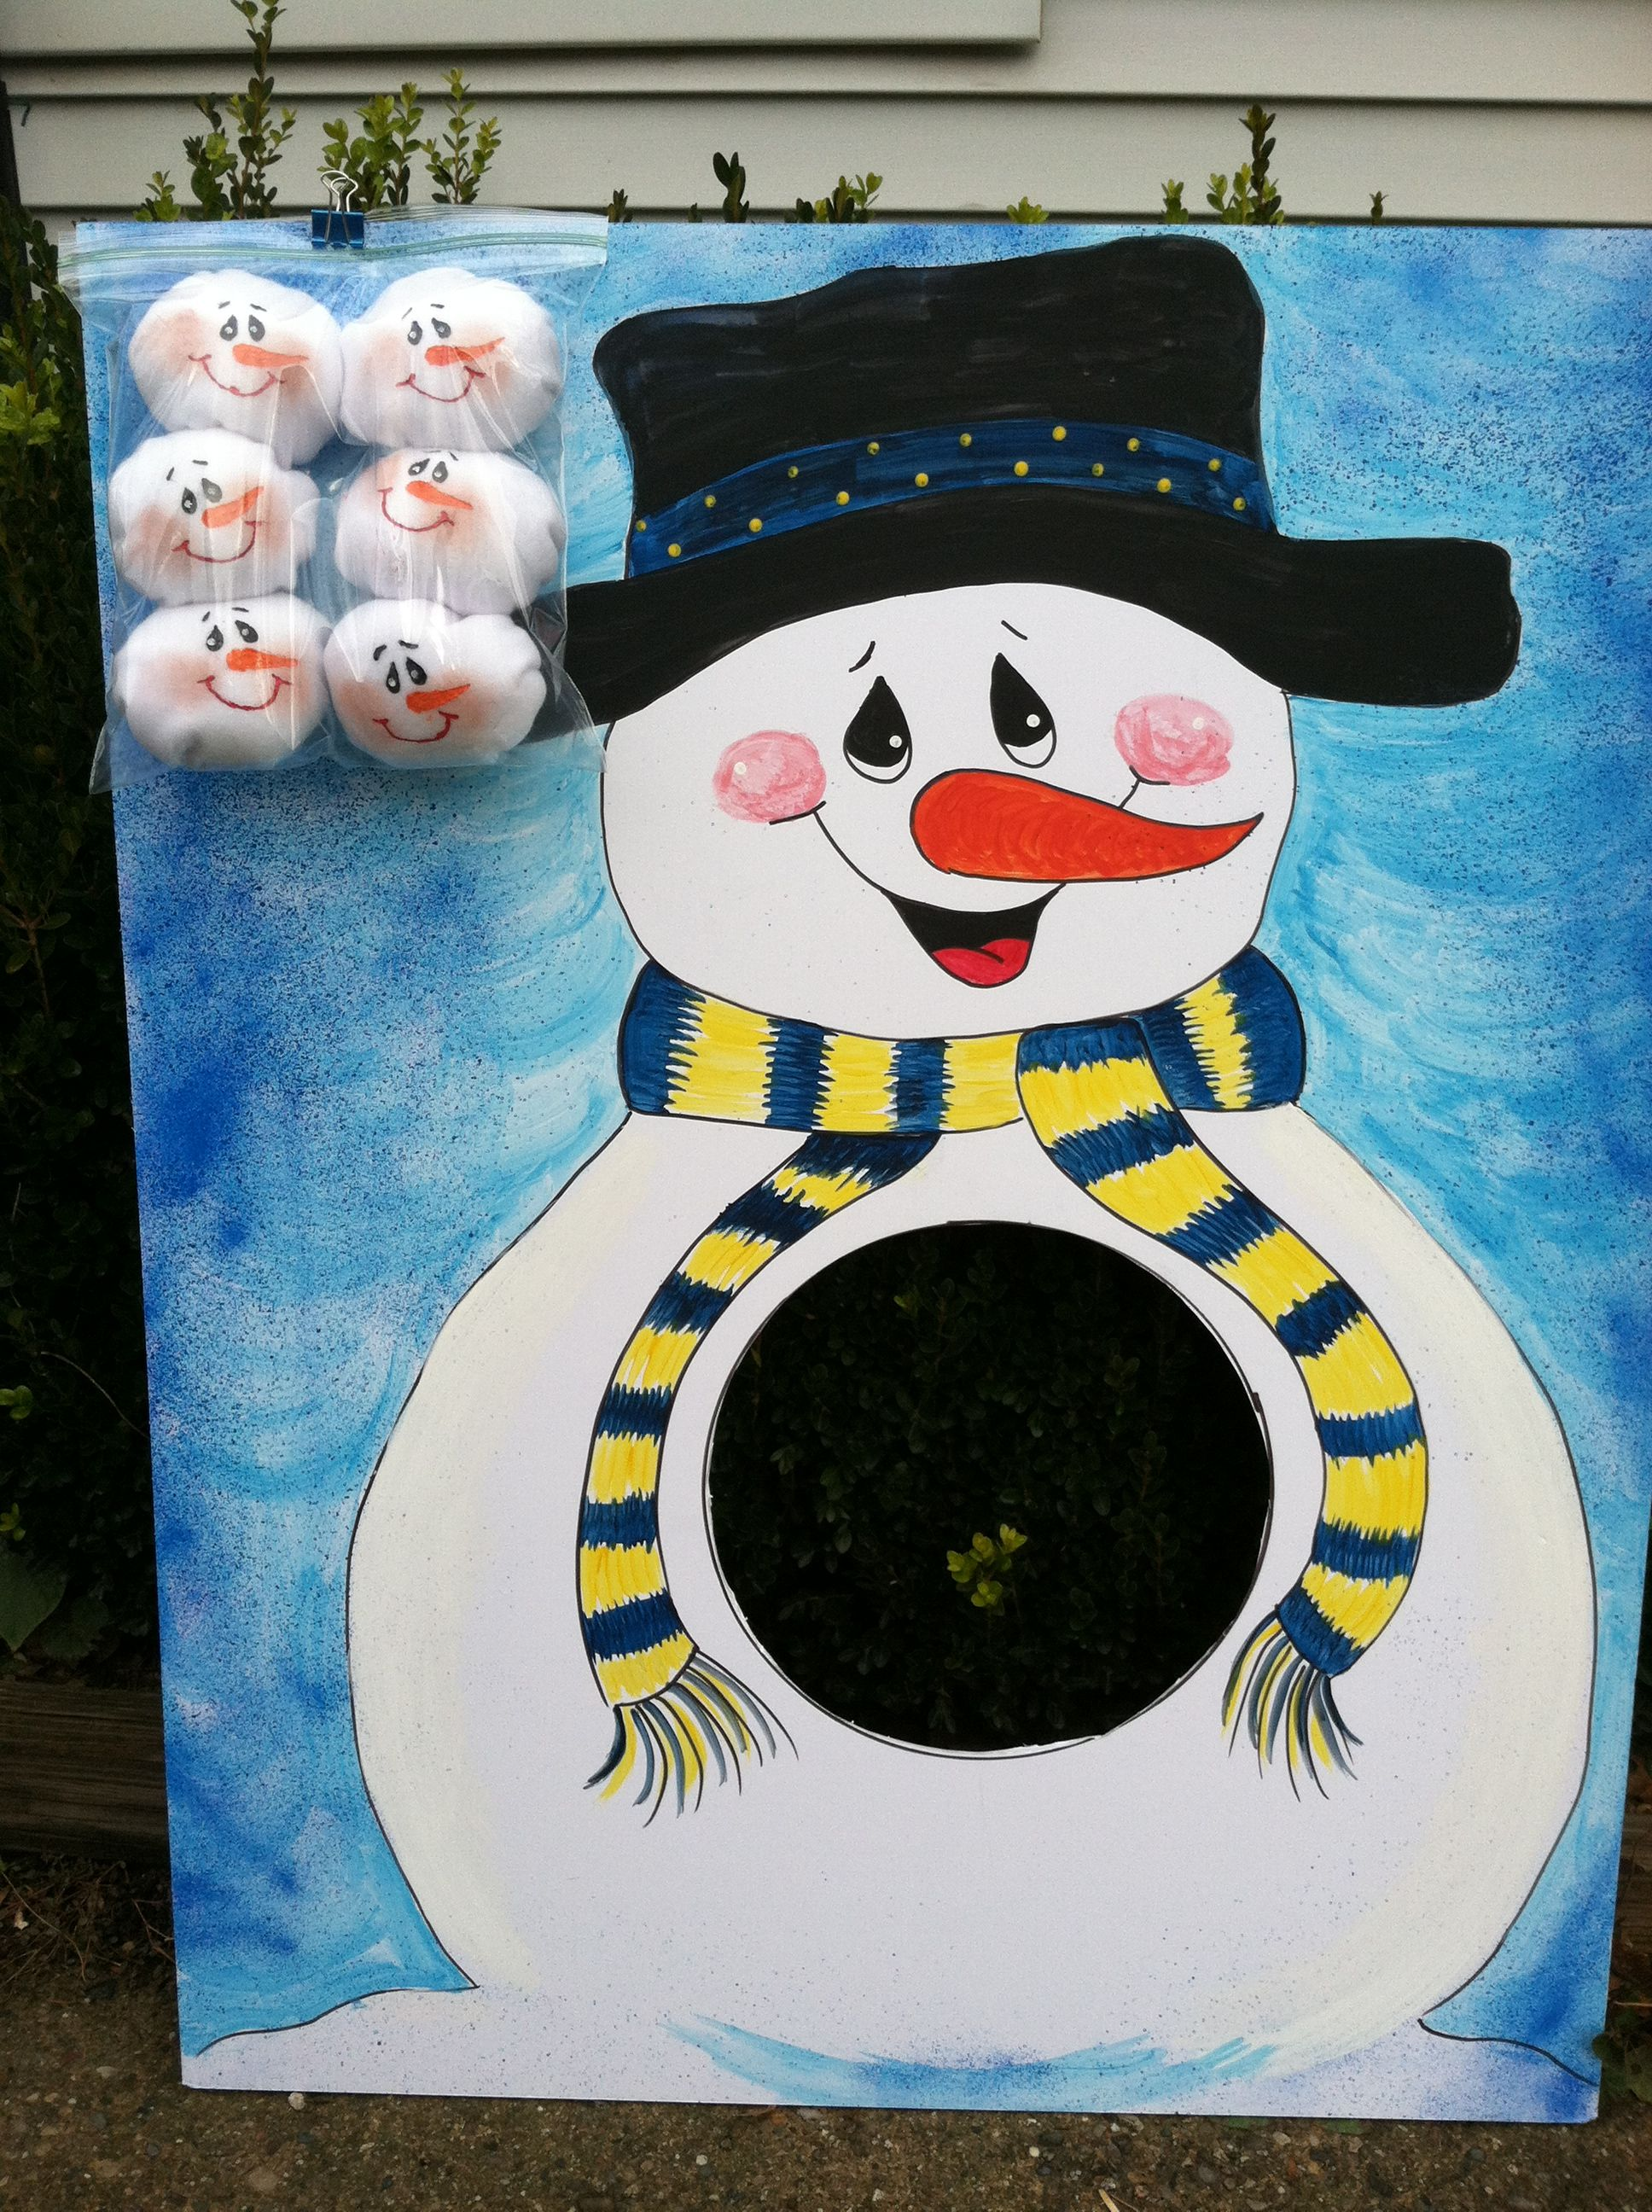 Snowball Toss Game Snowman Made From Foam Core Board